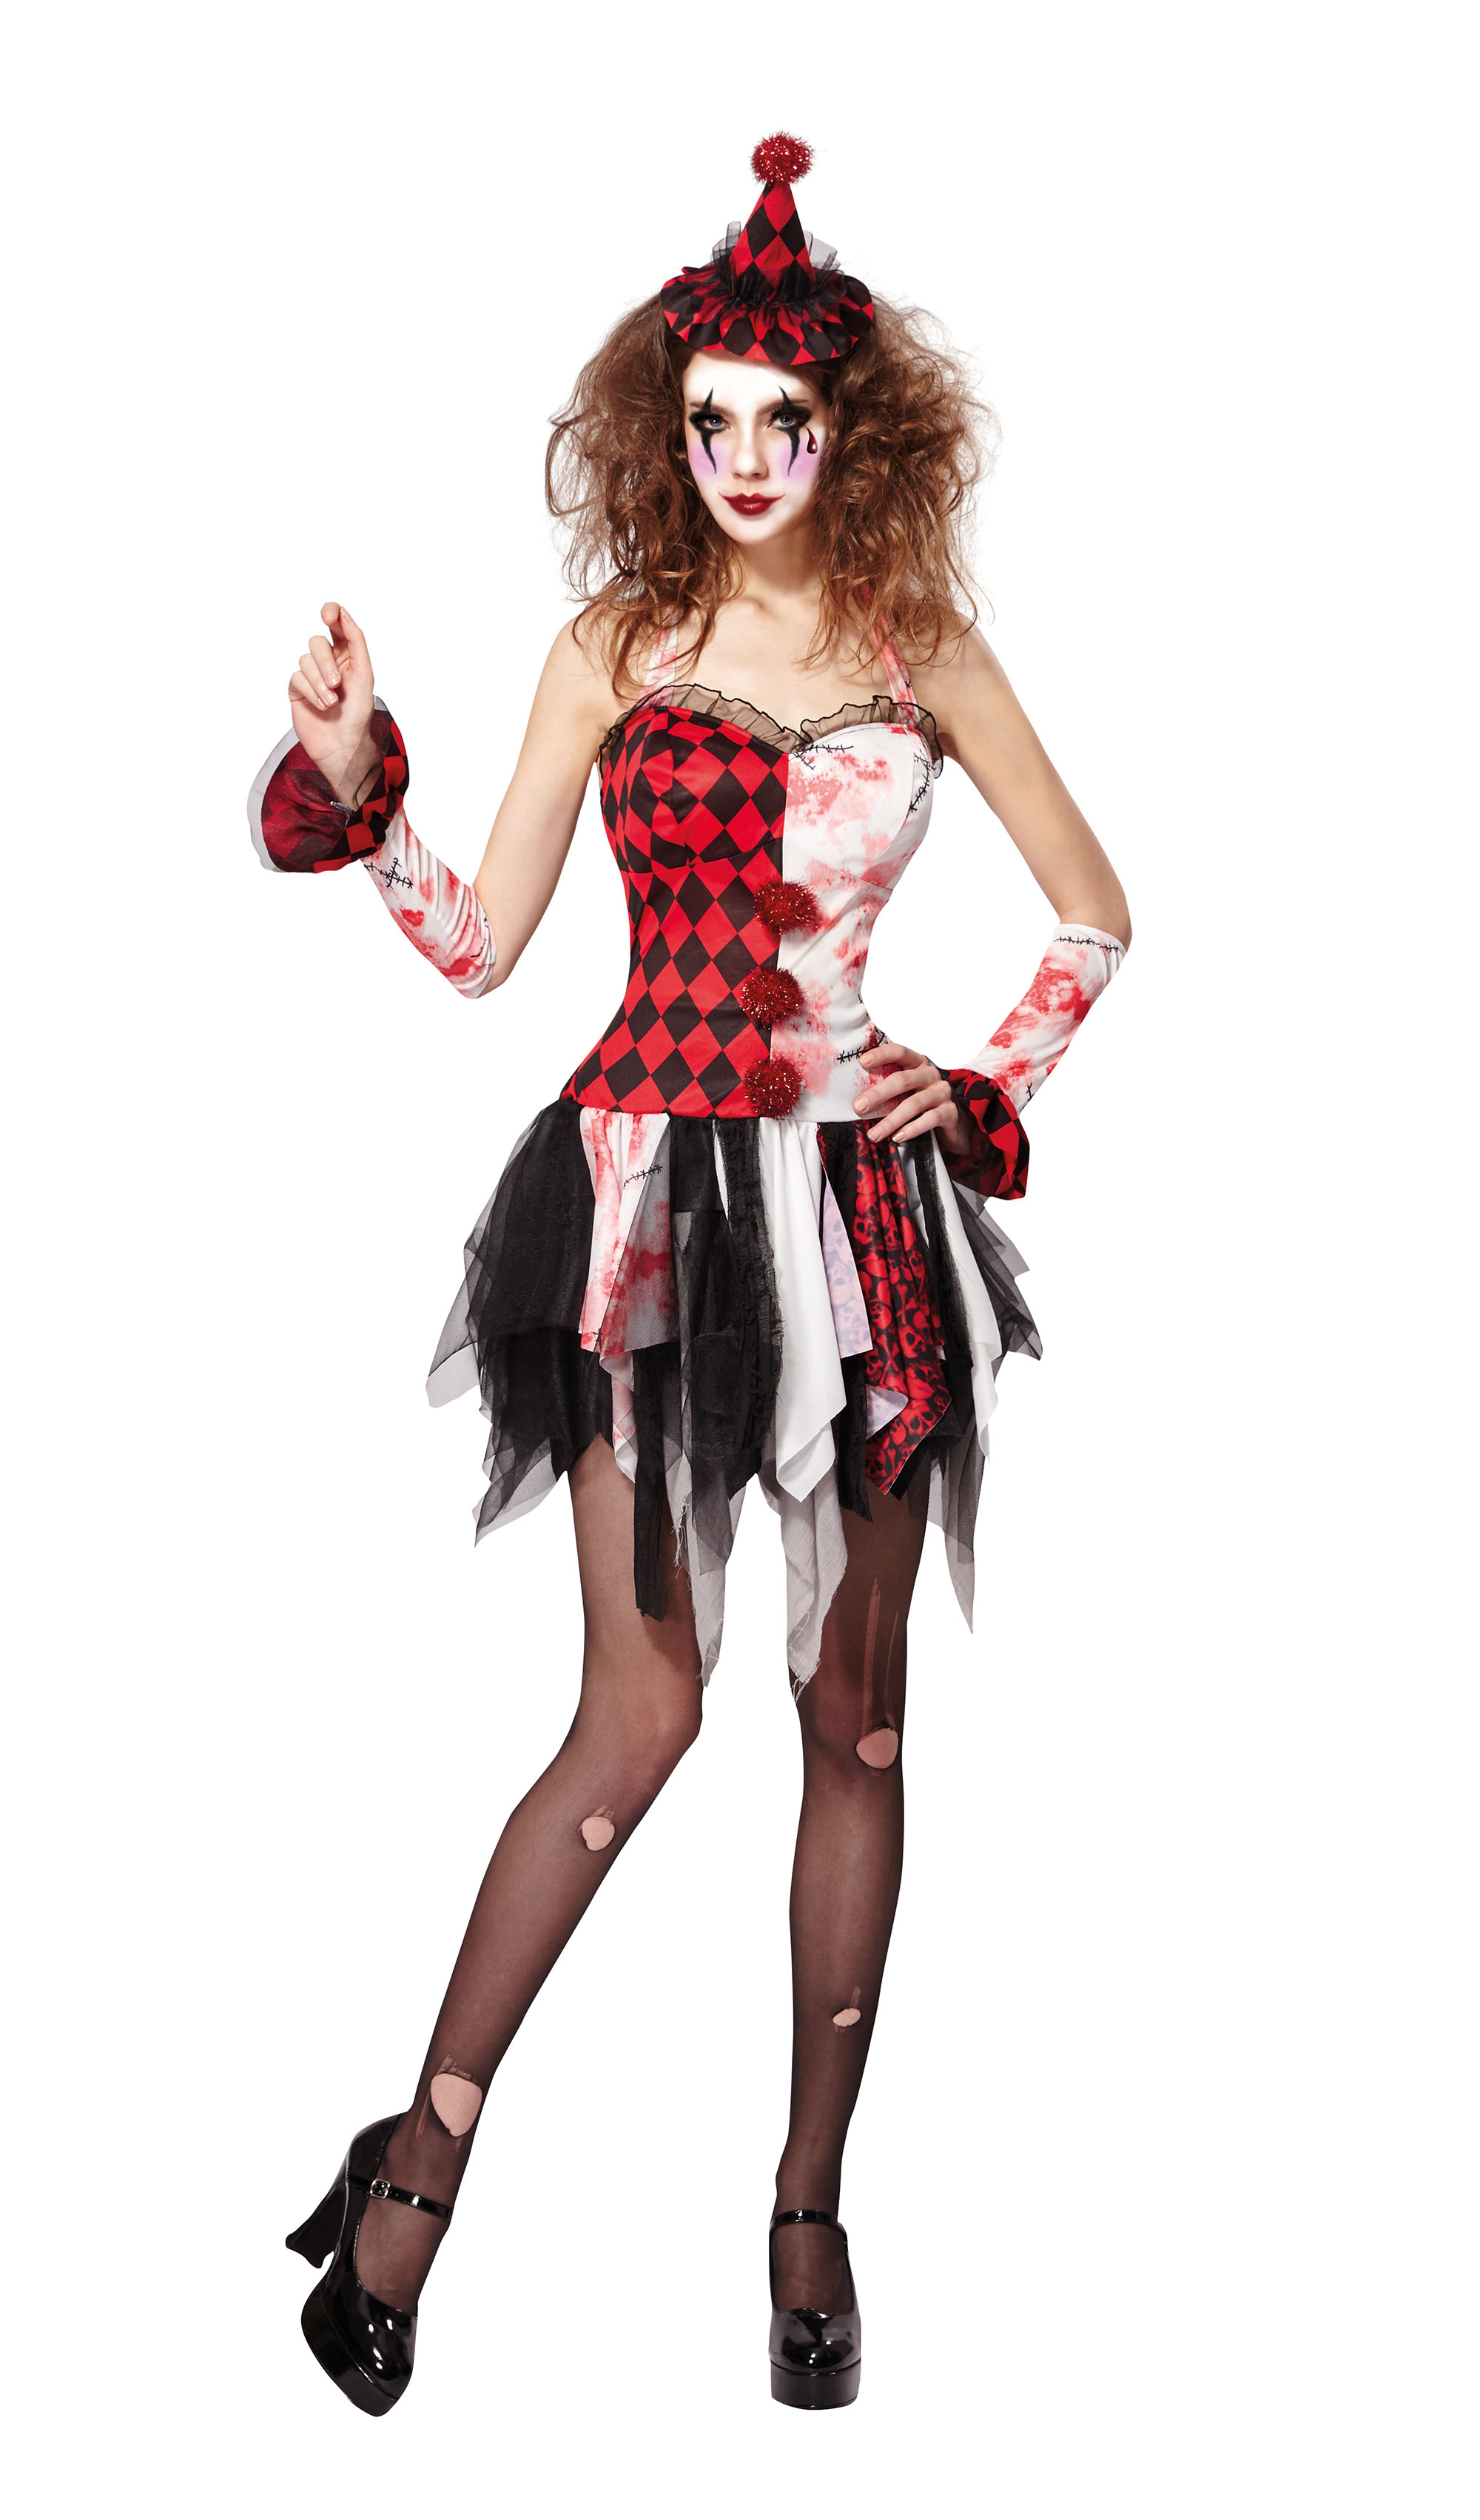 Jester Lady Scary Fancy Dress Costume Outfit Womens Adult UK 10-12